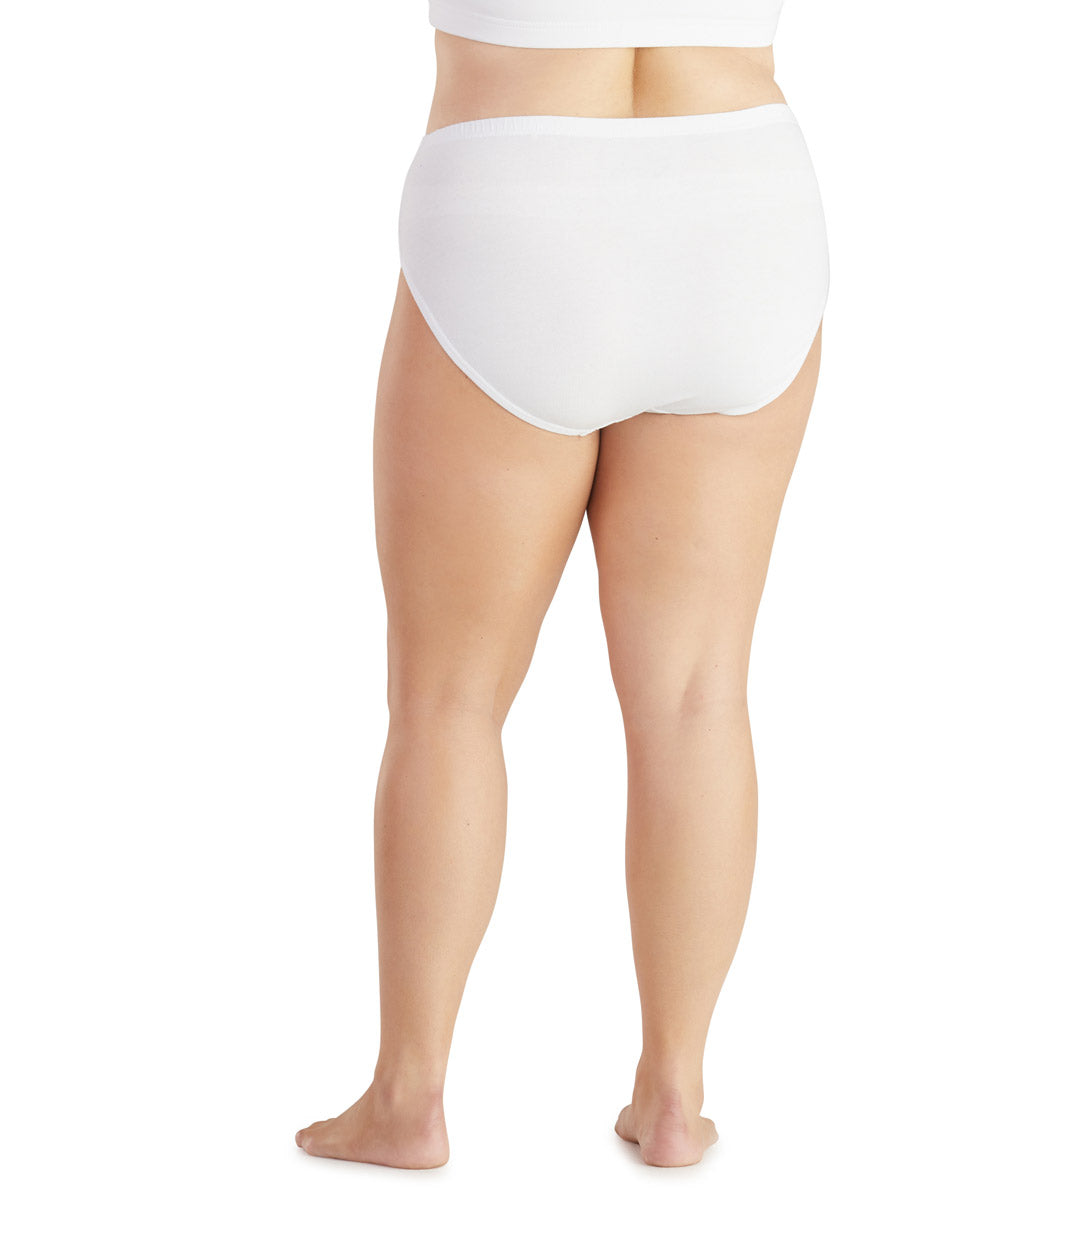 Junowear Cotton Stretch MidRise Brief-Plus Size Underwear & Intimates-Hop Wo Trading Co Ltd-1X-White-JunoActive